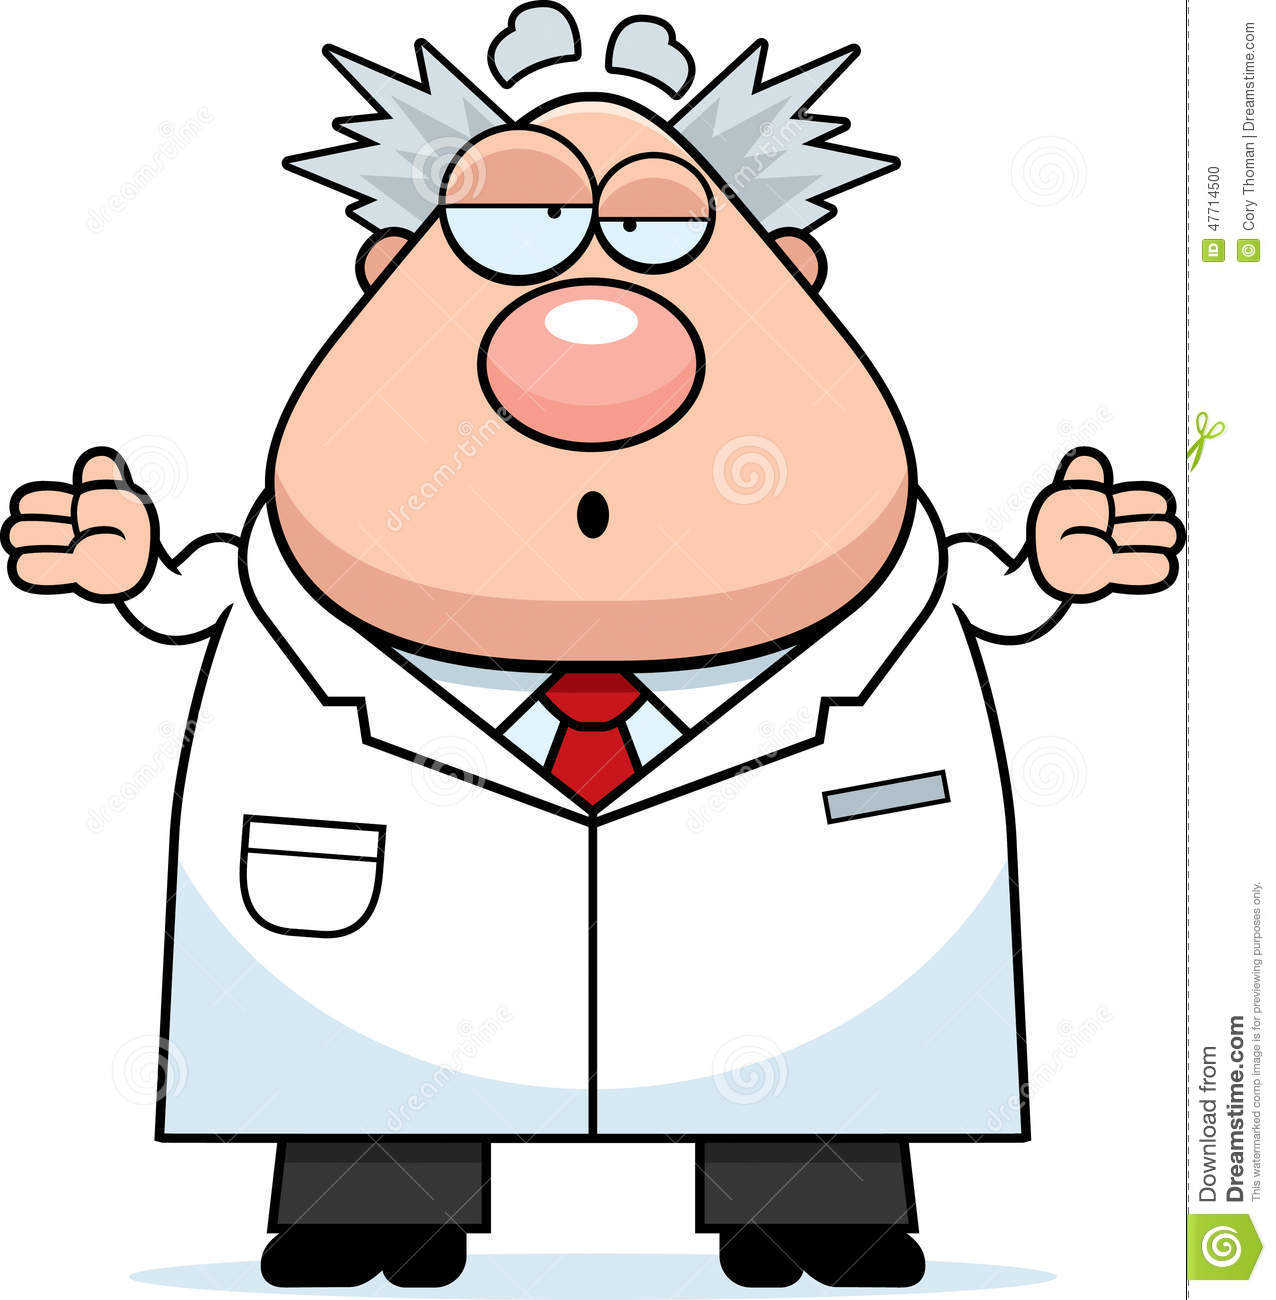 Confused Cartoon Mad Scientist Stock Vector - Image: 47714500